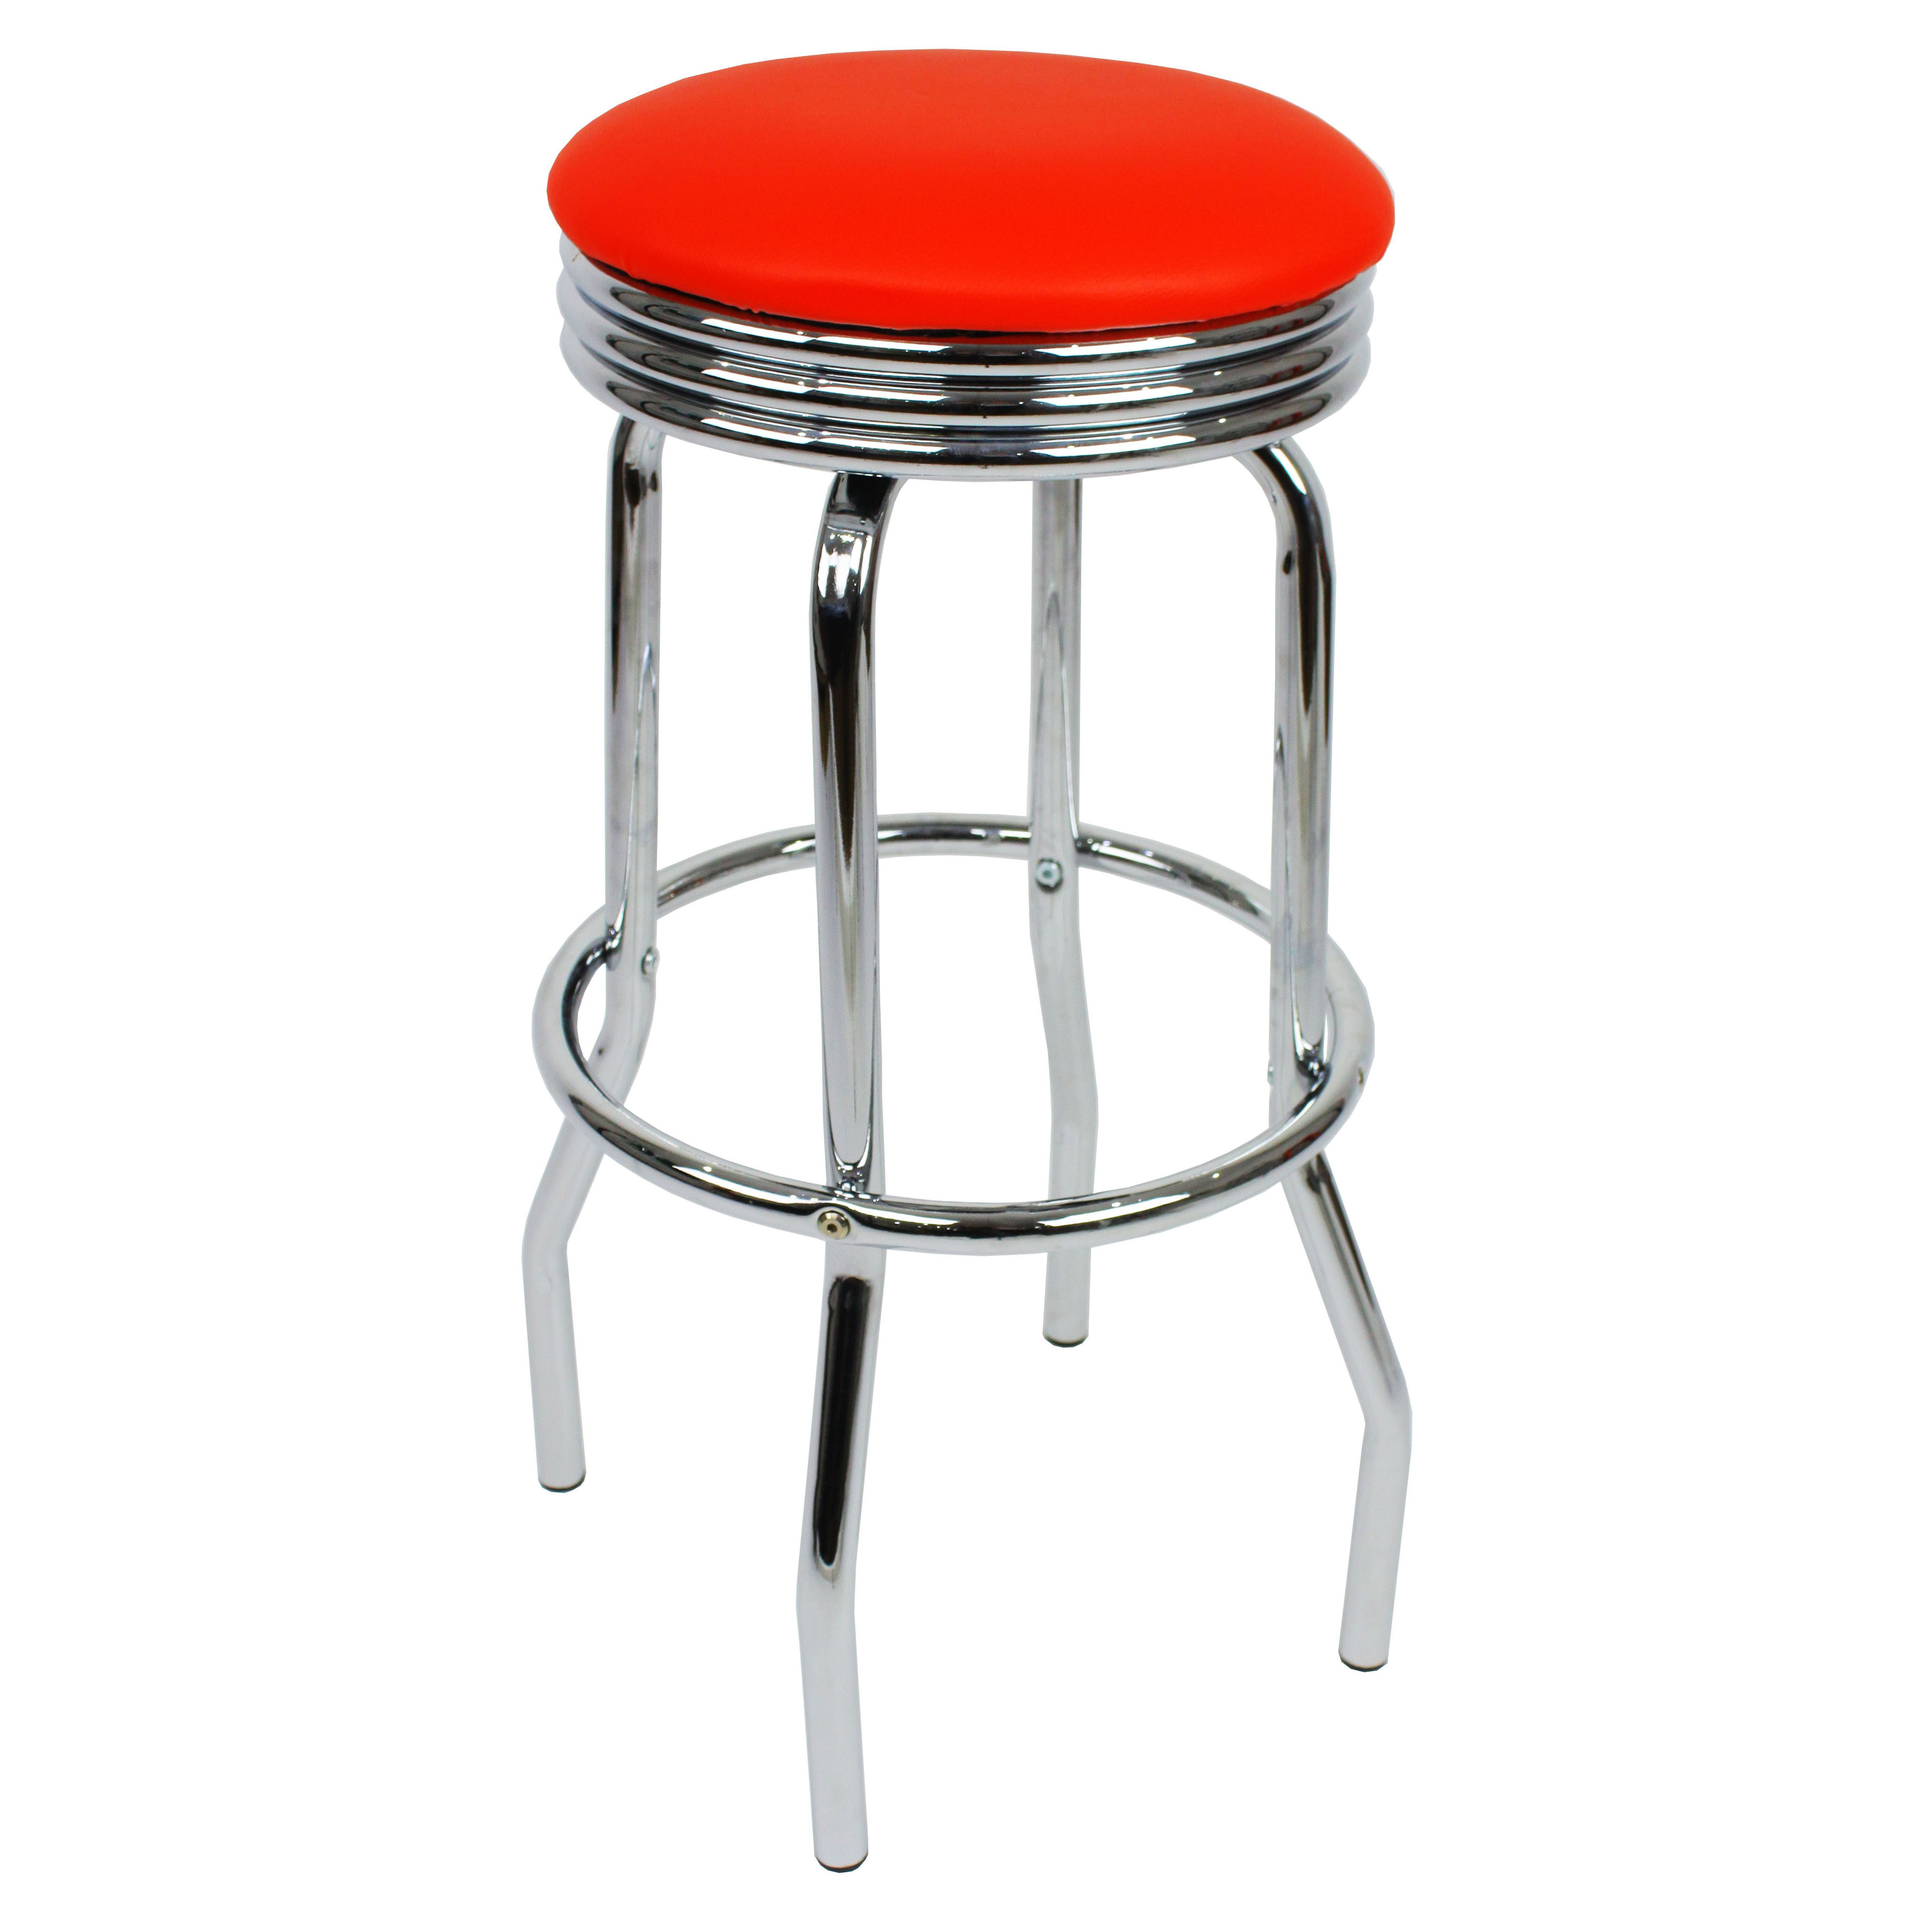 Retro Bar Stool - Red Product Image